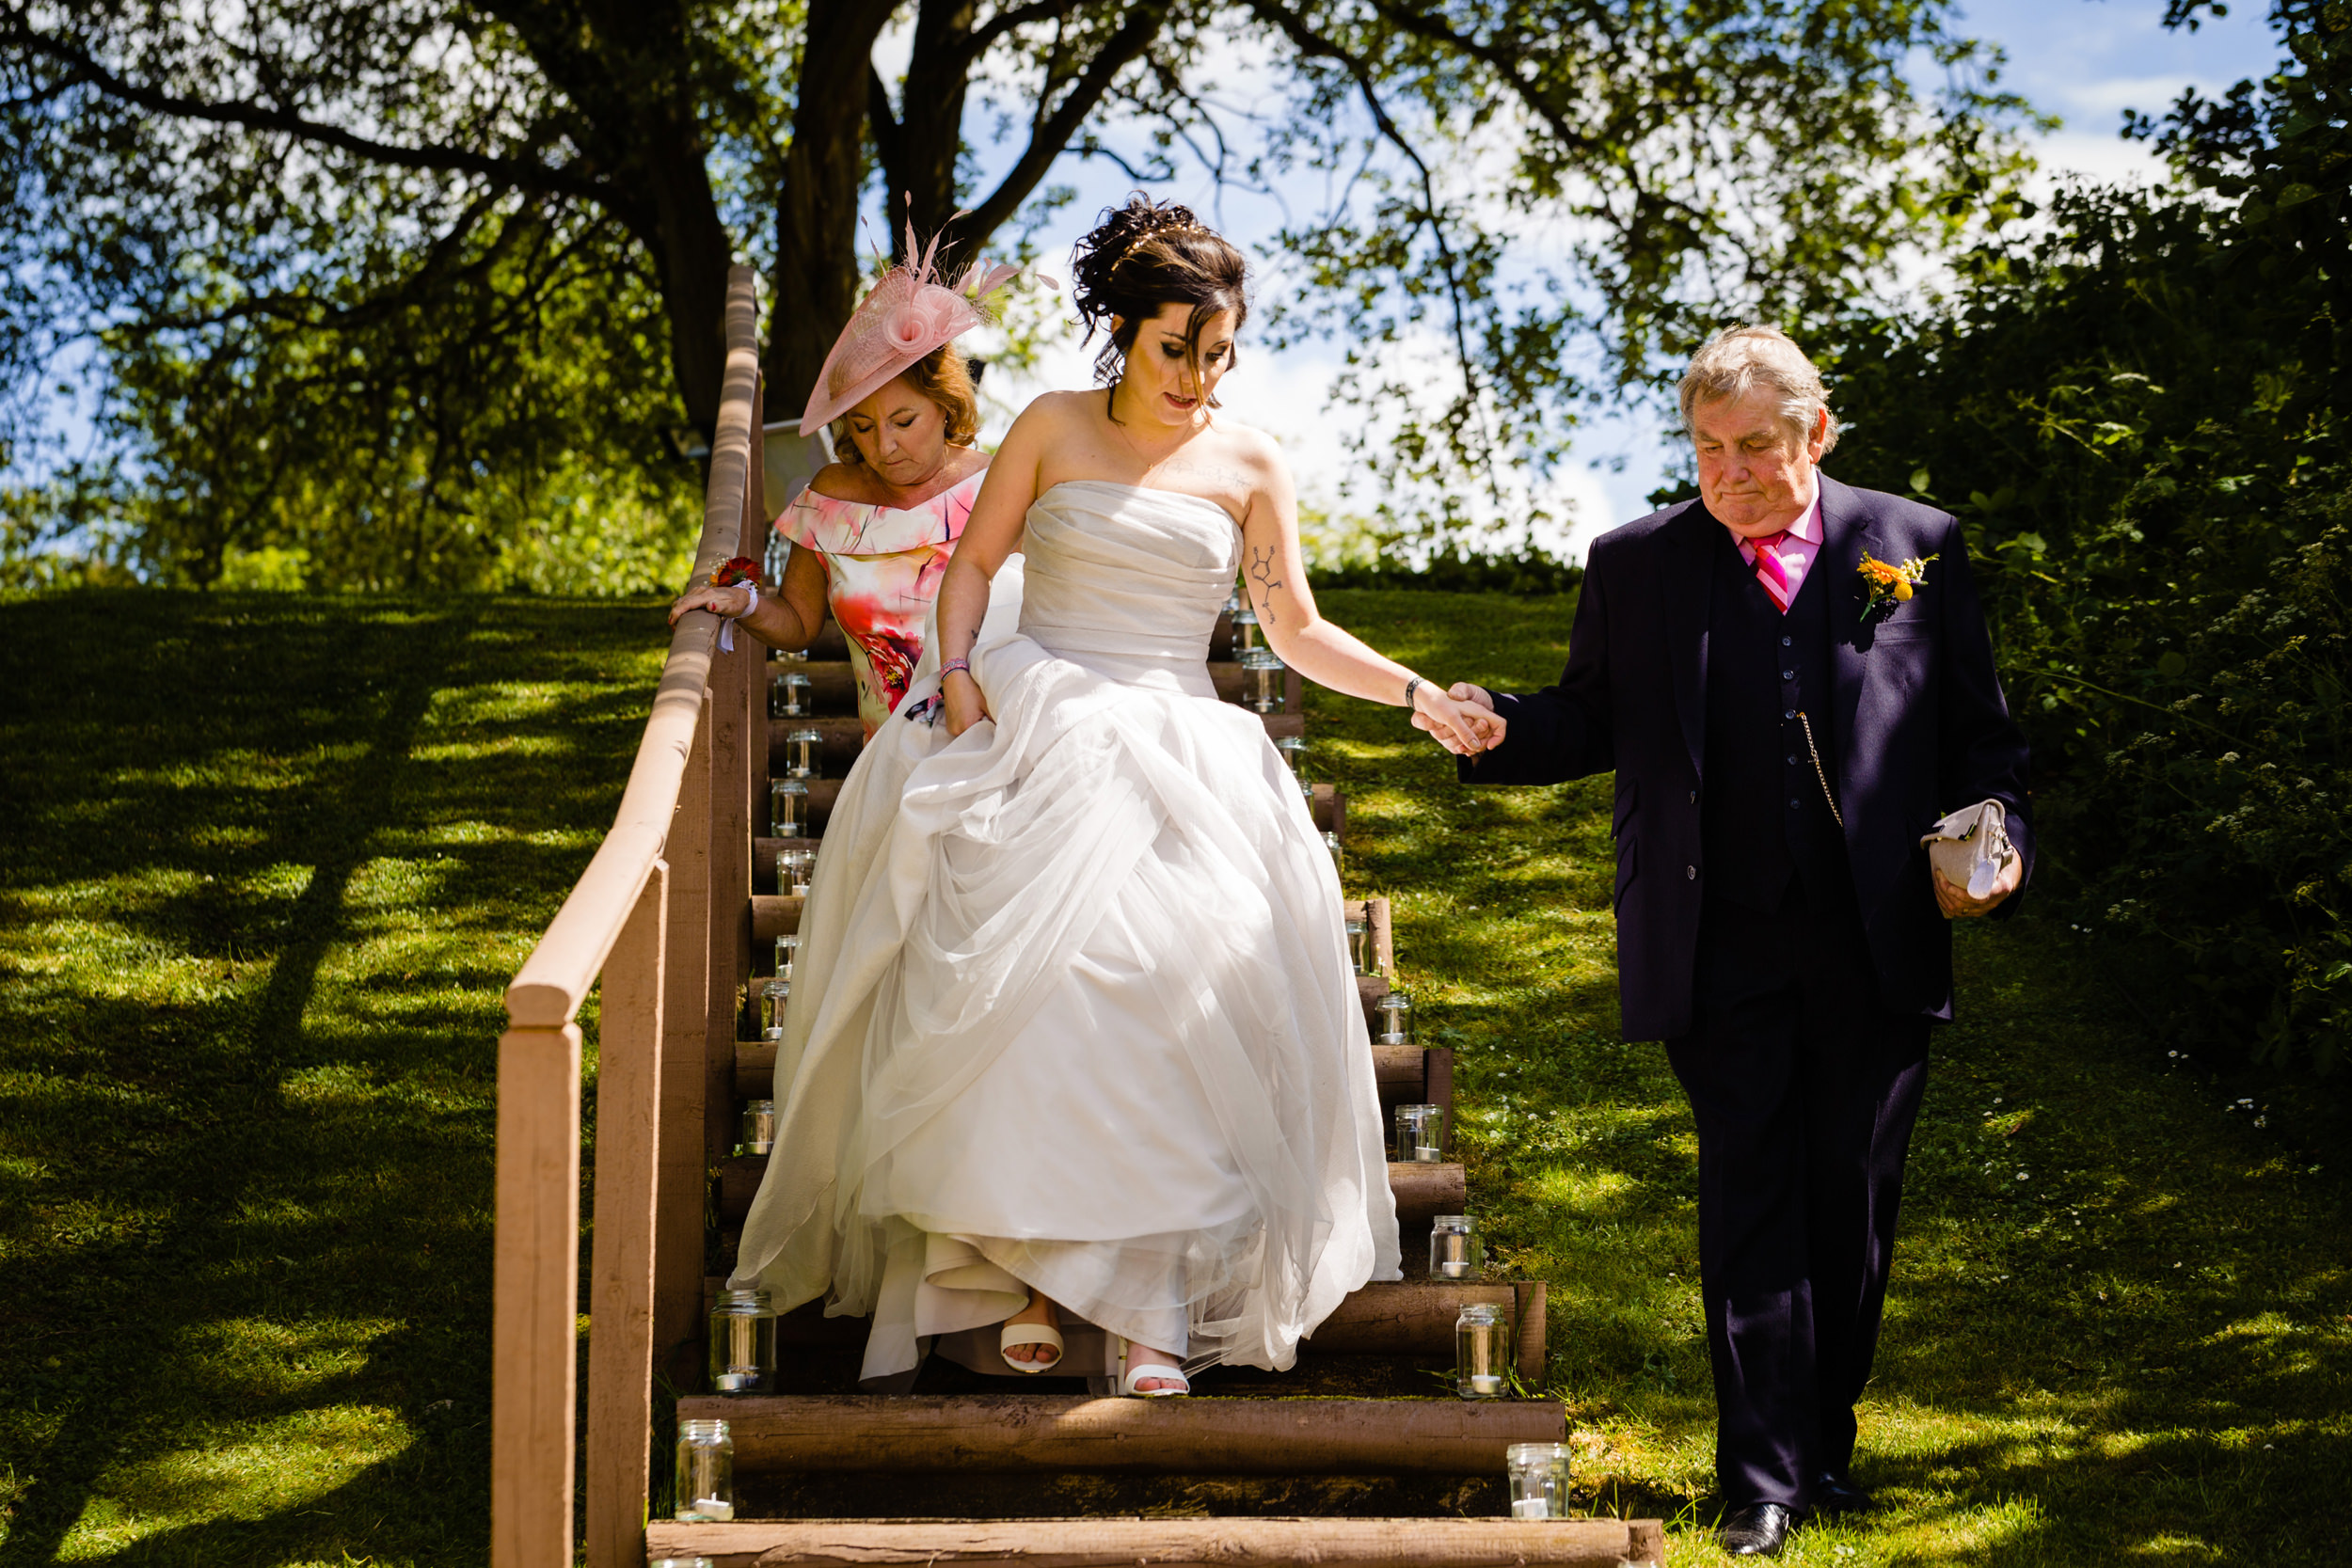 bride being helped down steps. plough inn, hathersage wedding photography by emma and rich.